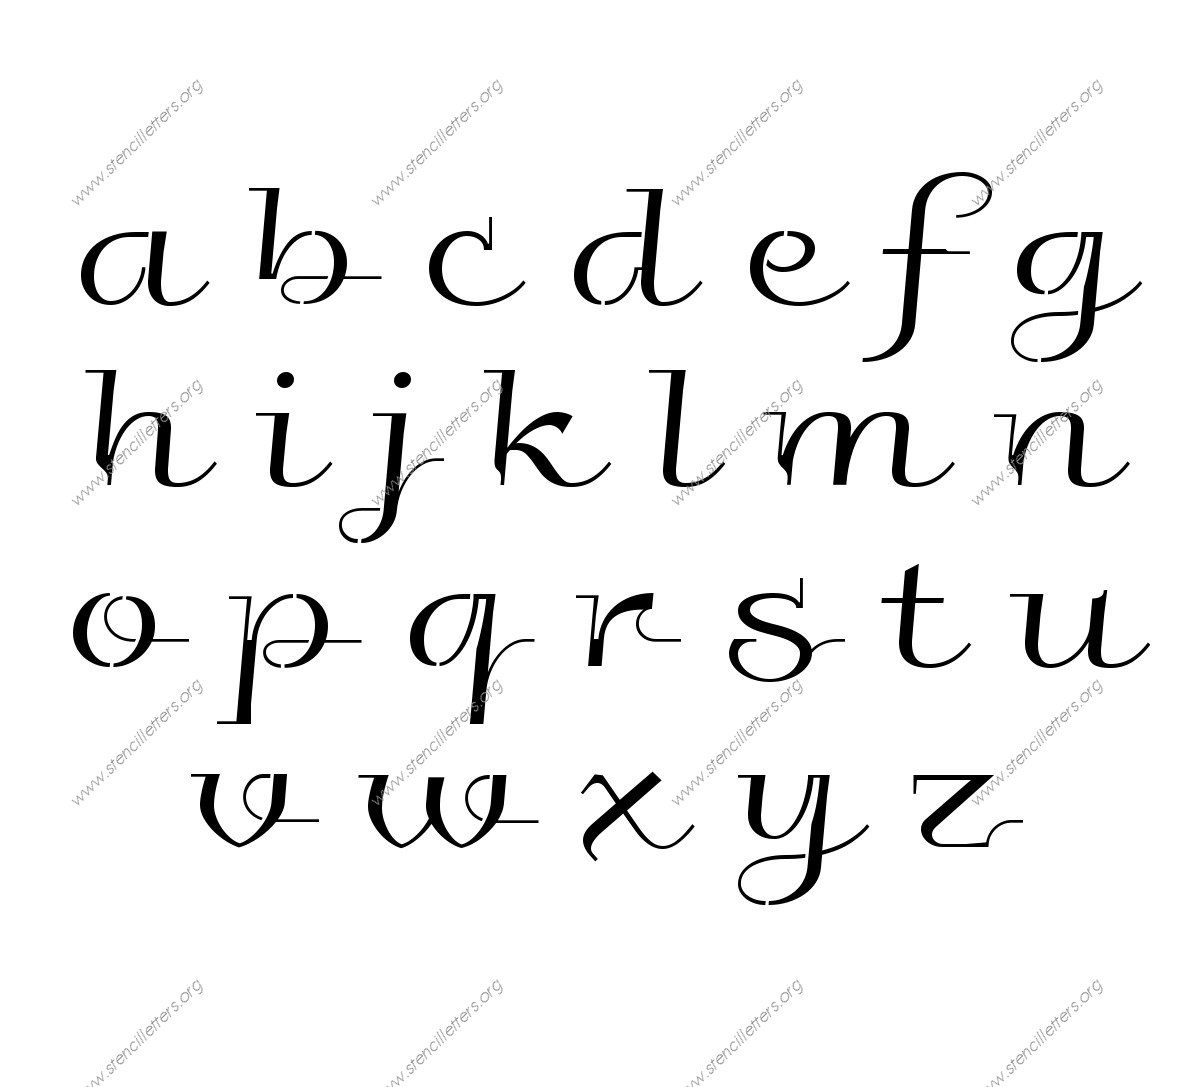 Wedding Calligraphy a to z lowercase letter stencils